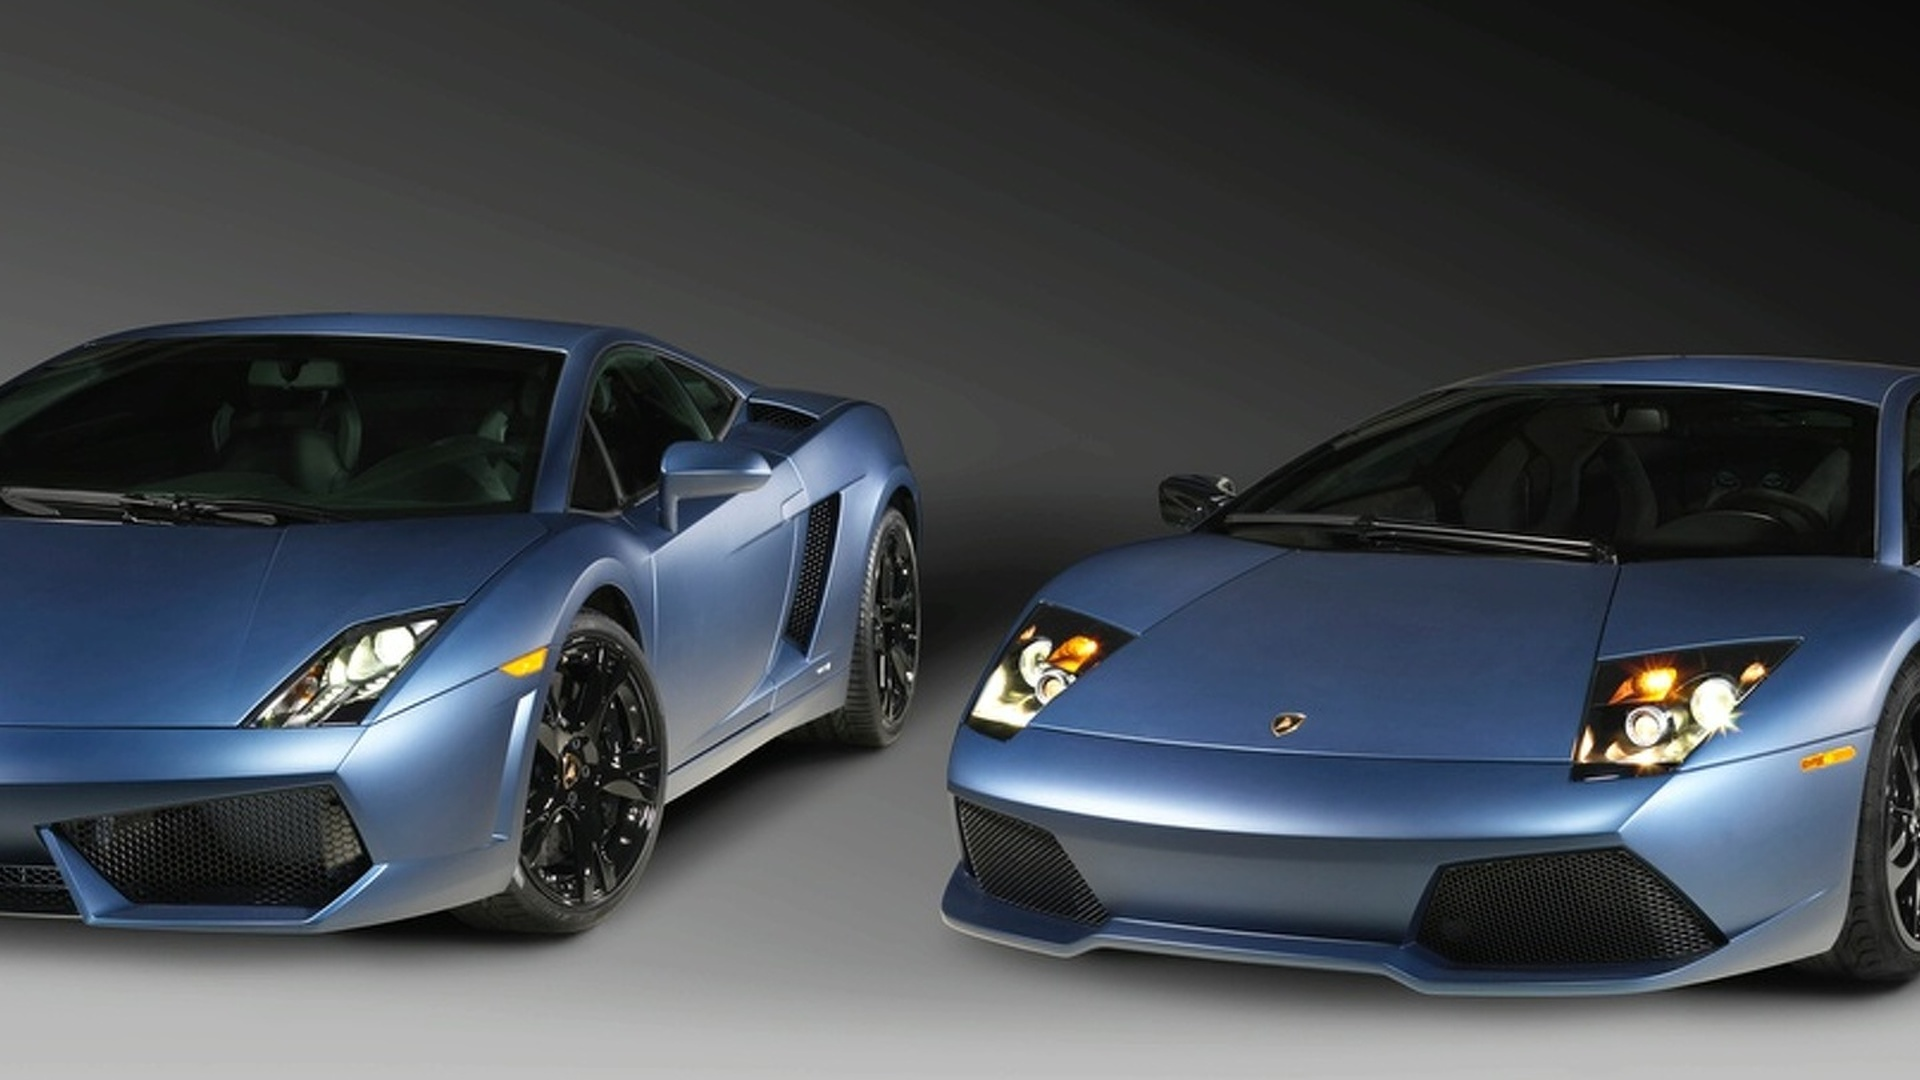 Exclusive Lamborghini Murciélago LP 640 & Gallardo LP 560-4 Models Presented in Detroit